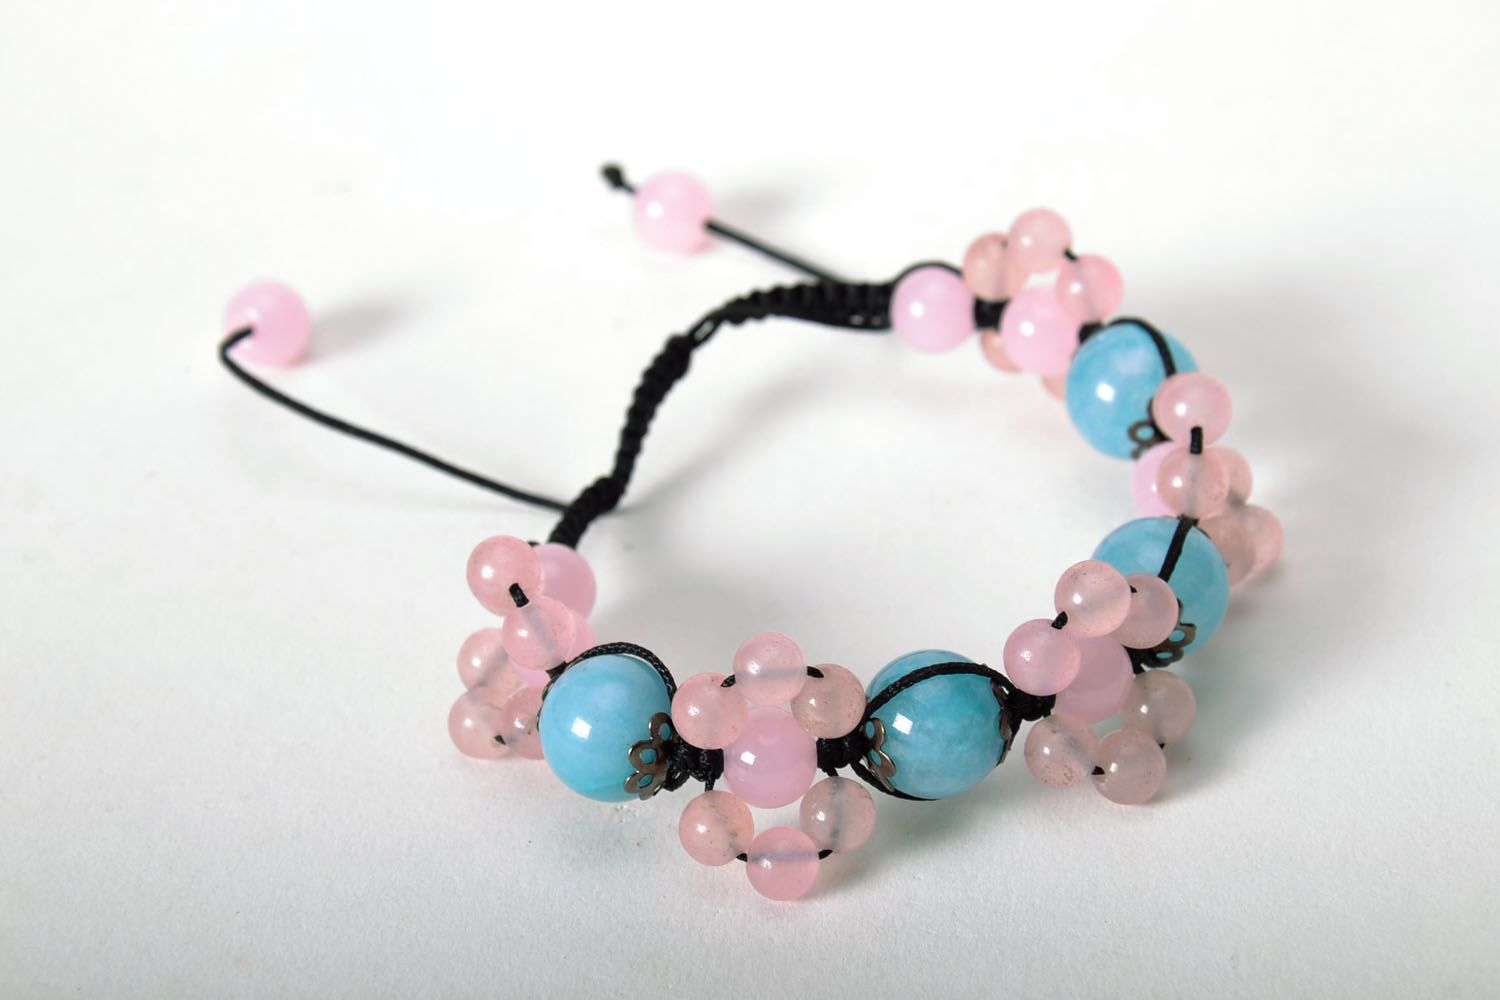 Homemade bracelet with natural stones photo 3